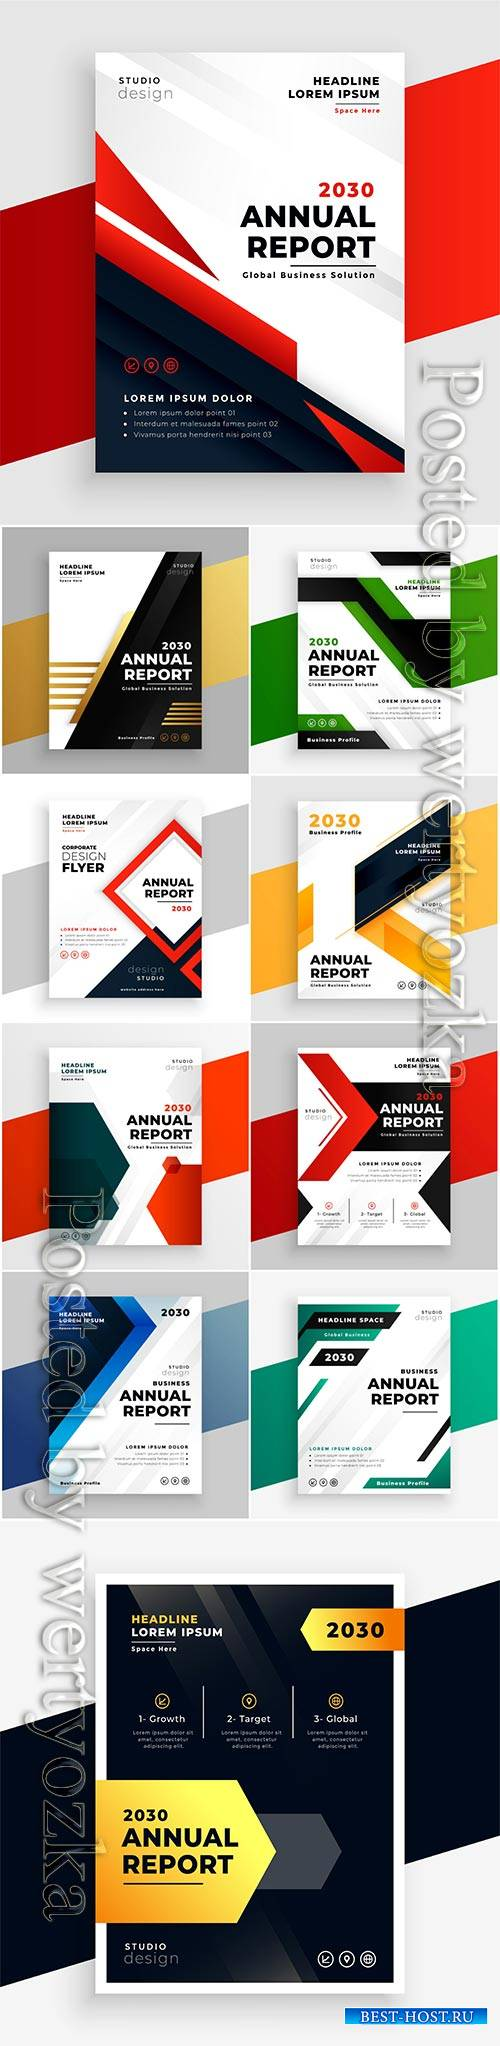 Business brochures in modern style, vector illustration